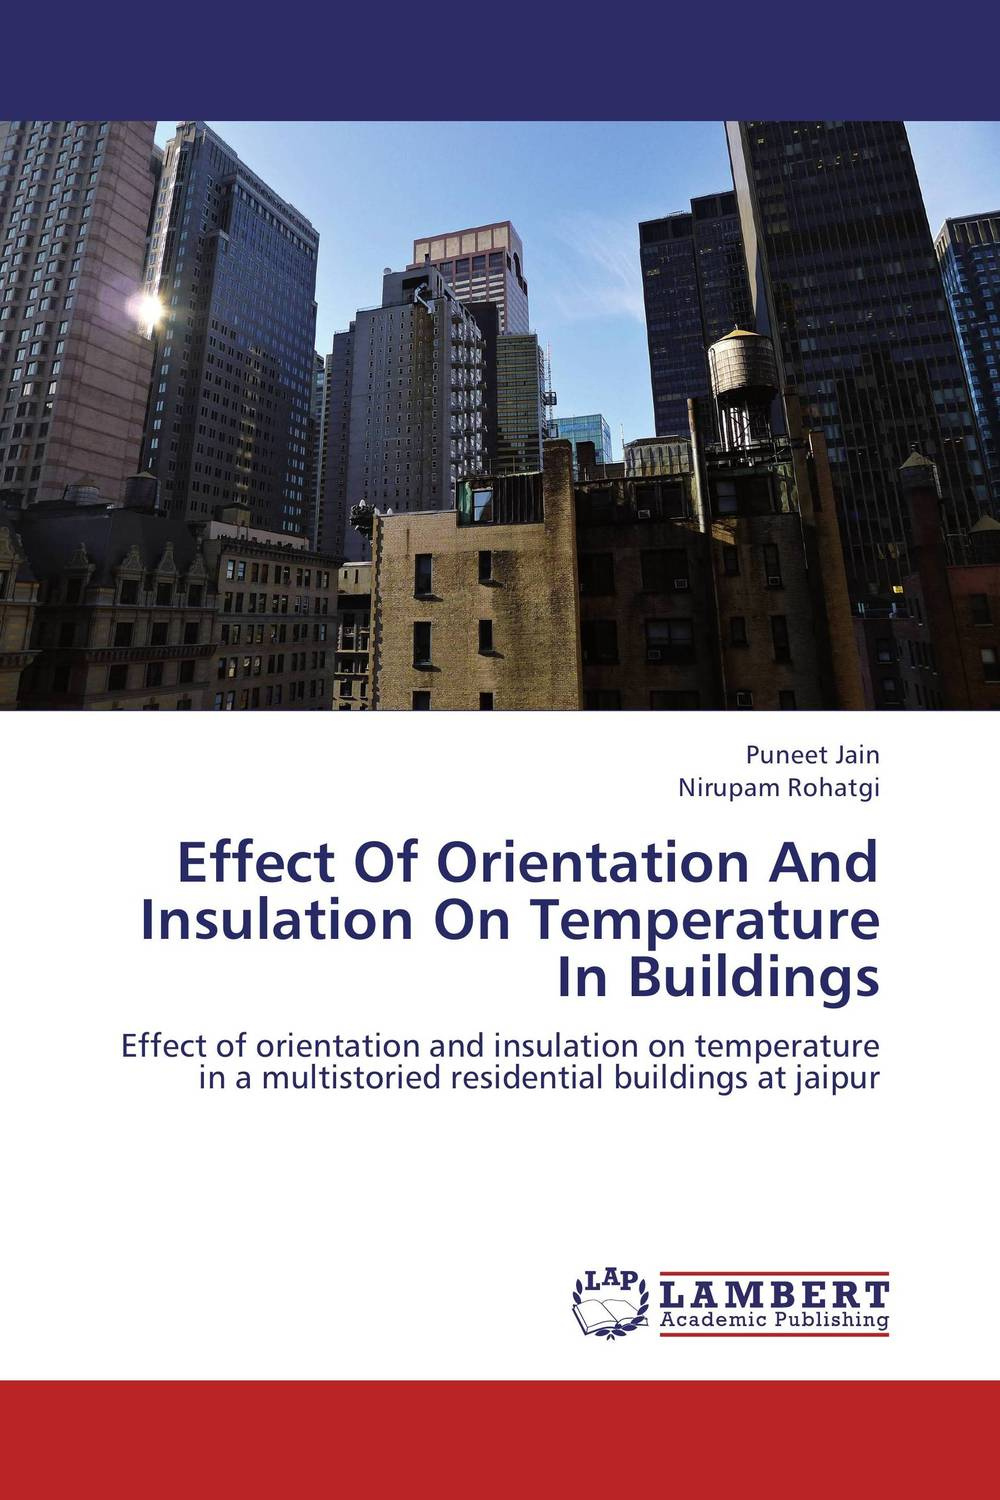 Effect Of Orientation And Insulation On Temperature In Buildings rakesh singh effective customer orientation in salespeople evidences from india